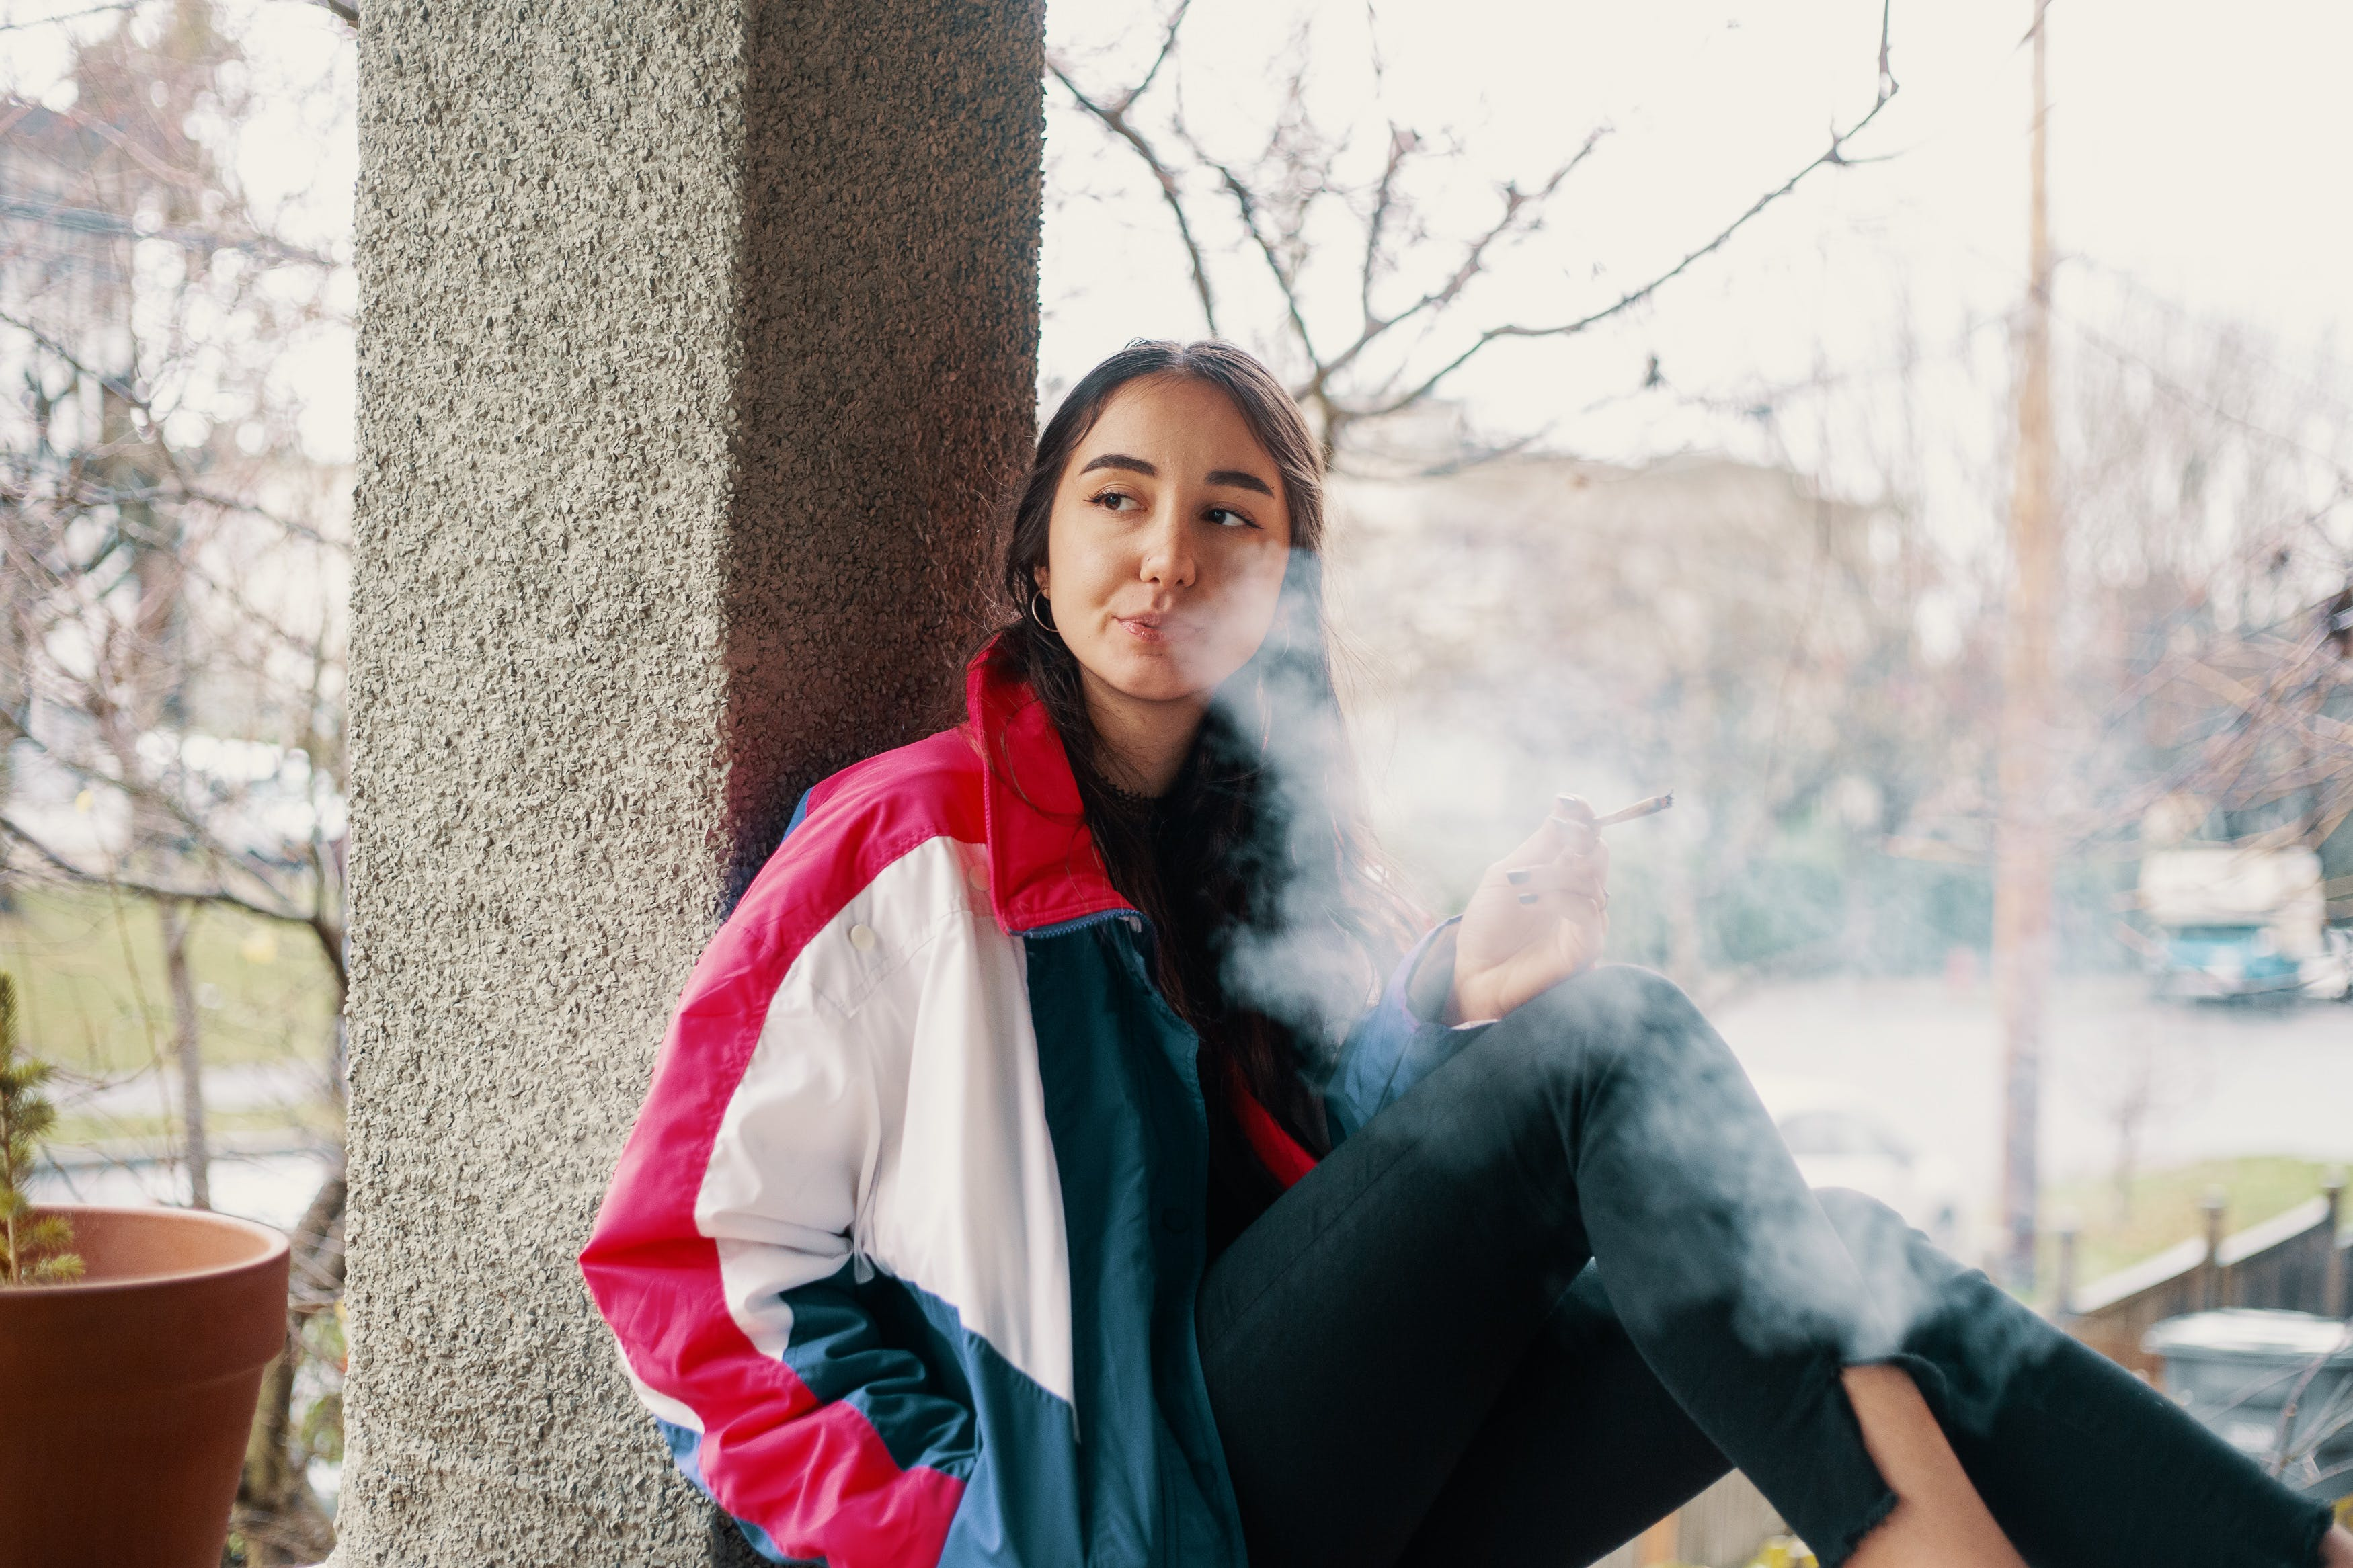 Smoking Weed While Being Sick2 Smoking Weed and Being Sick: Will It Make You Better or Worse?